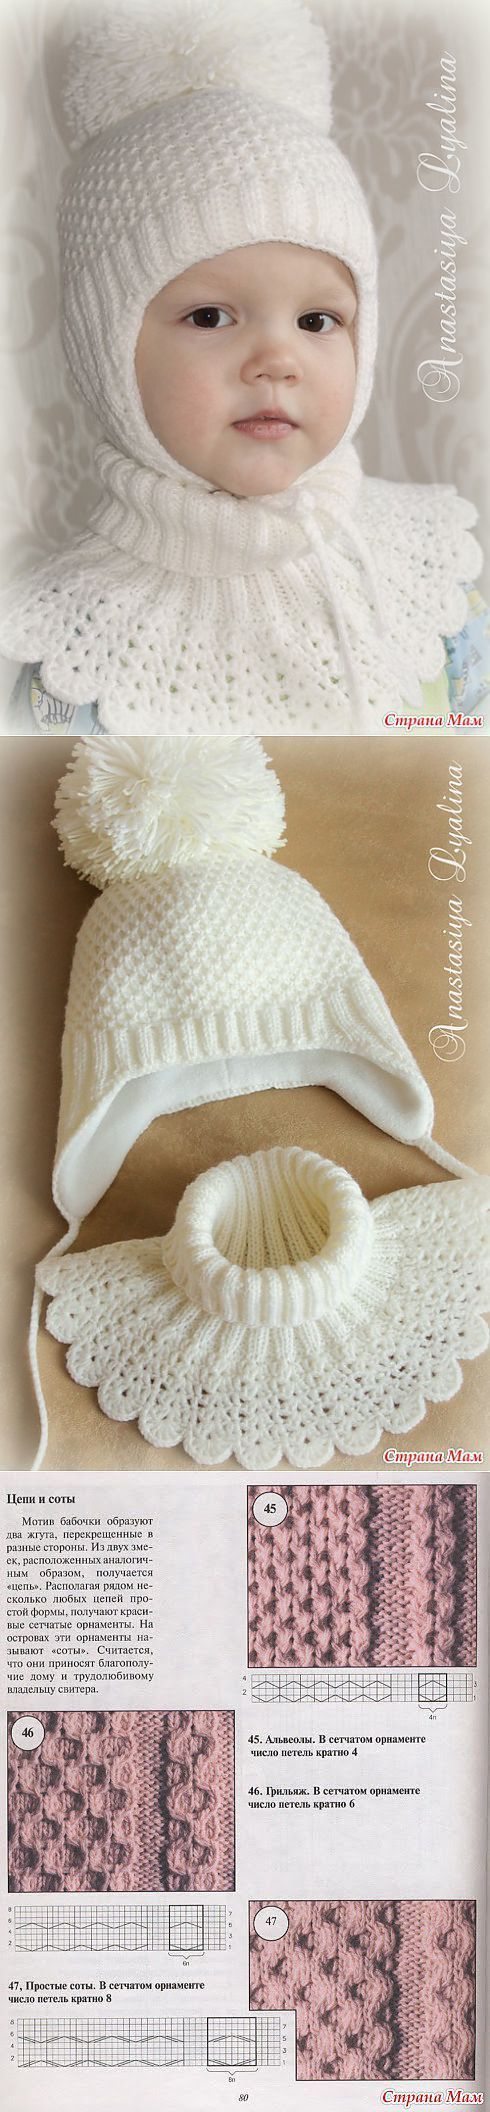 Find and save knitting and crochet schemas, simple recipes, and ...